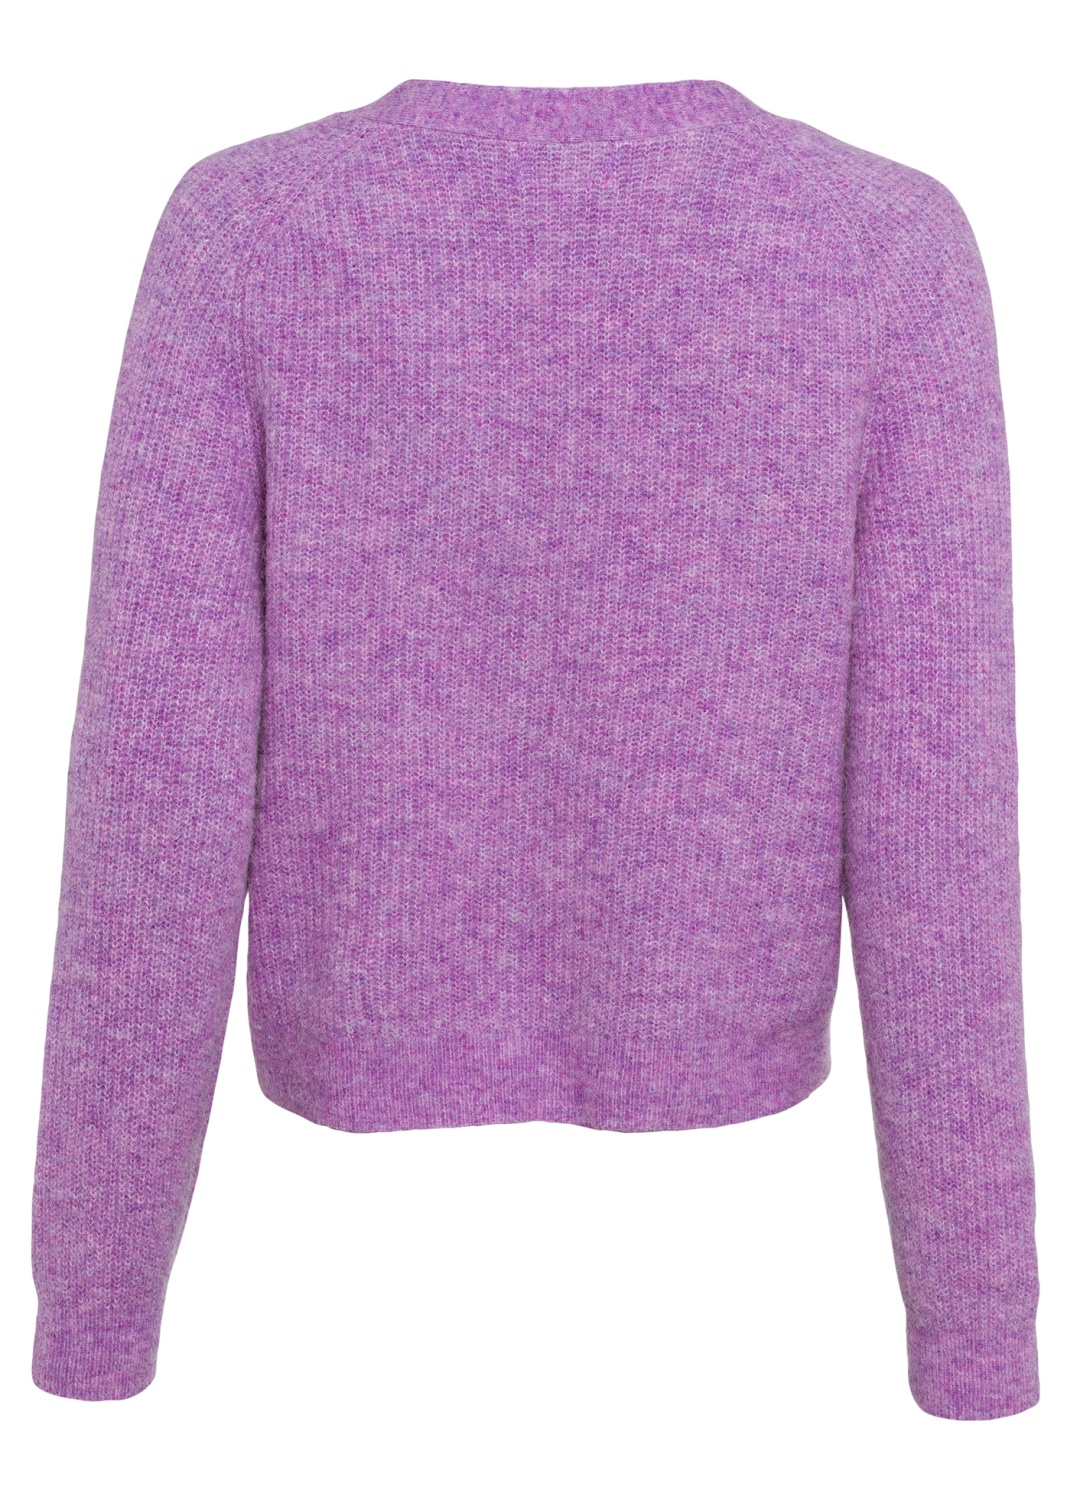 Soft Wool Knit Cardigan image number 1